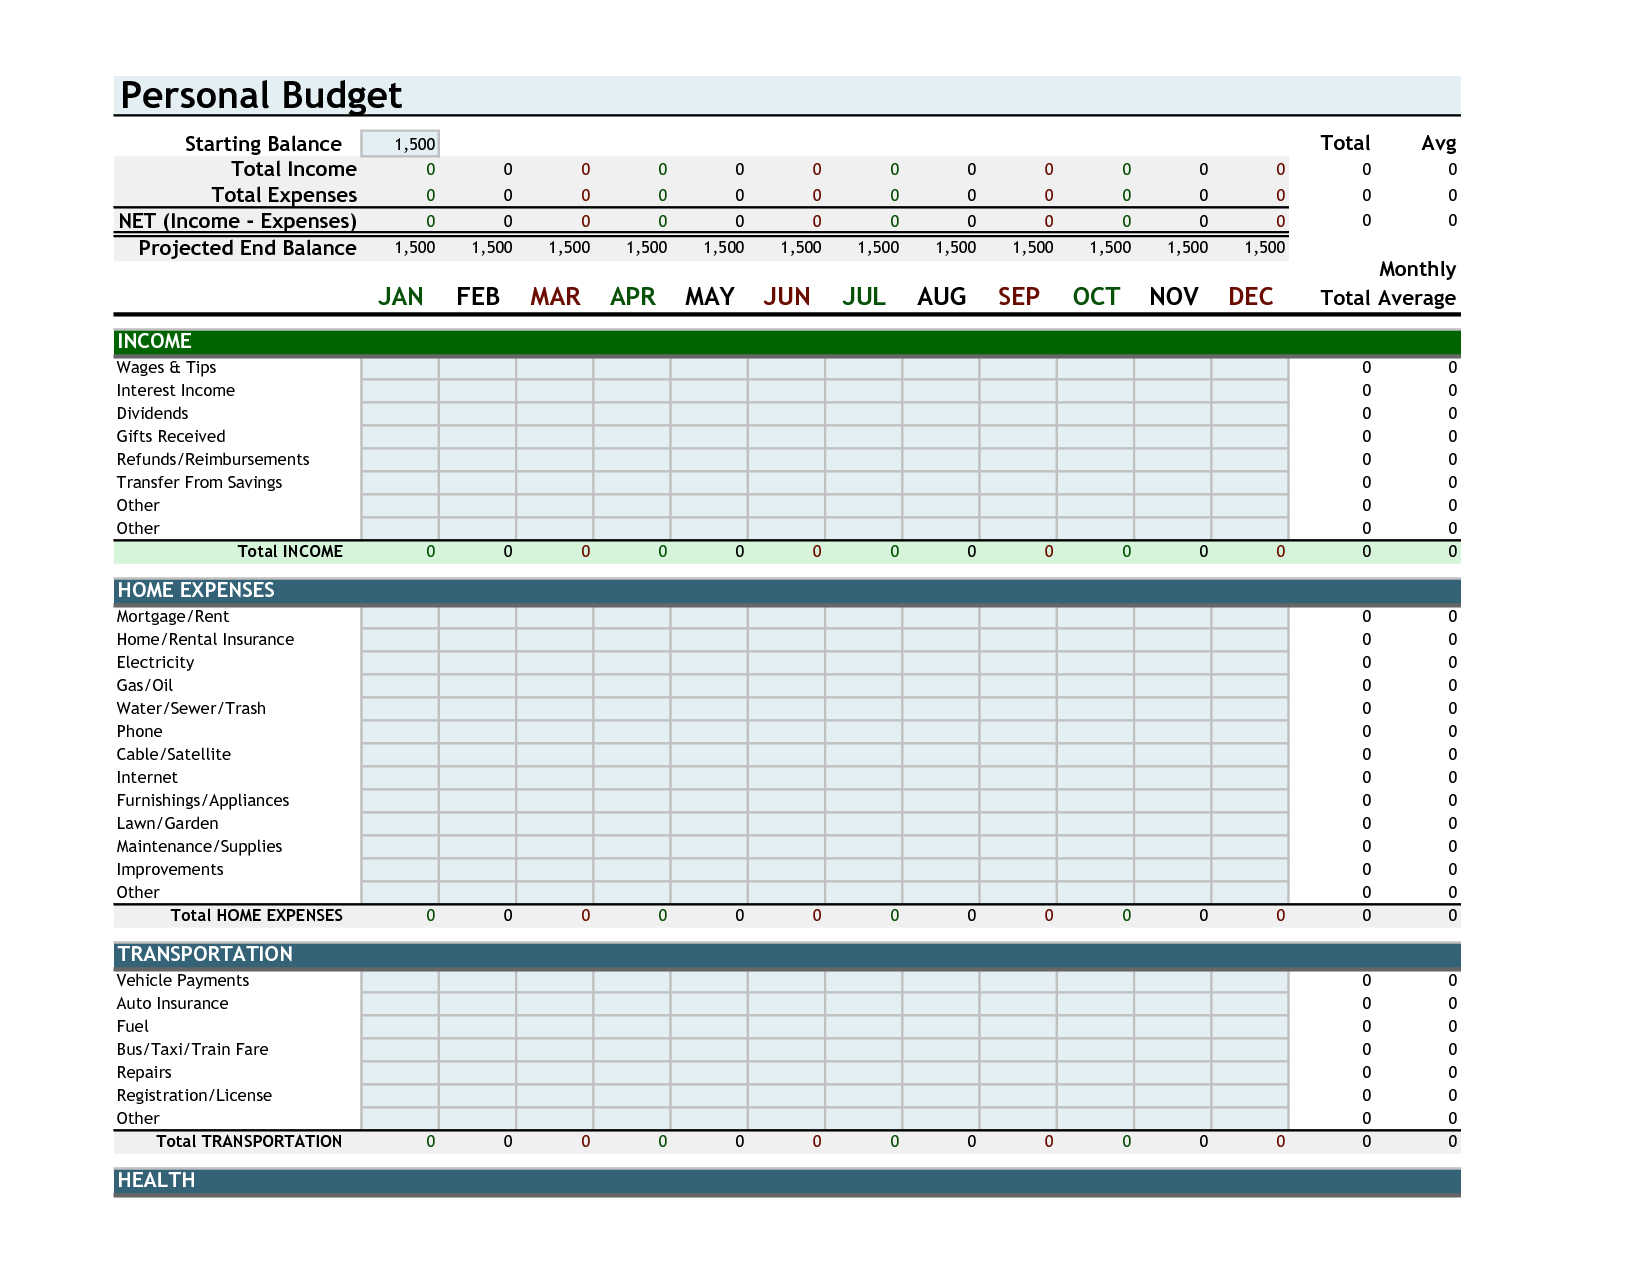 Personal Budget Spreadsheet Excel Within Personal Budget Spreadsheet Examples Simple Beautiful Elegant